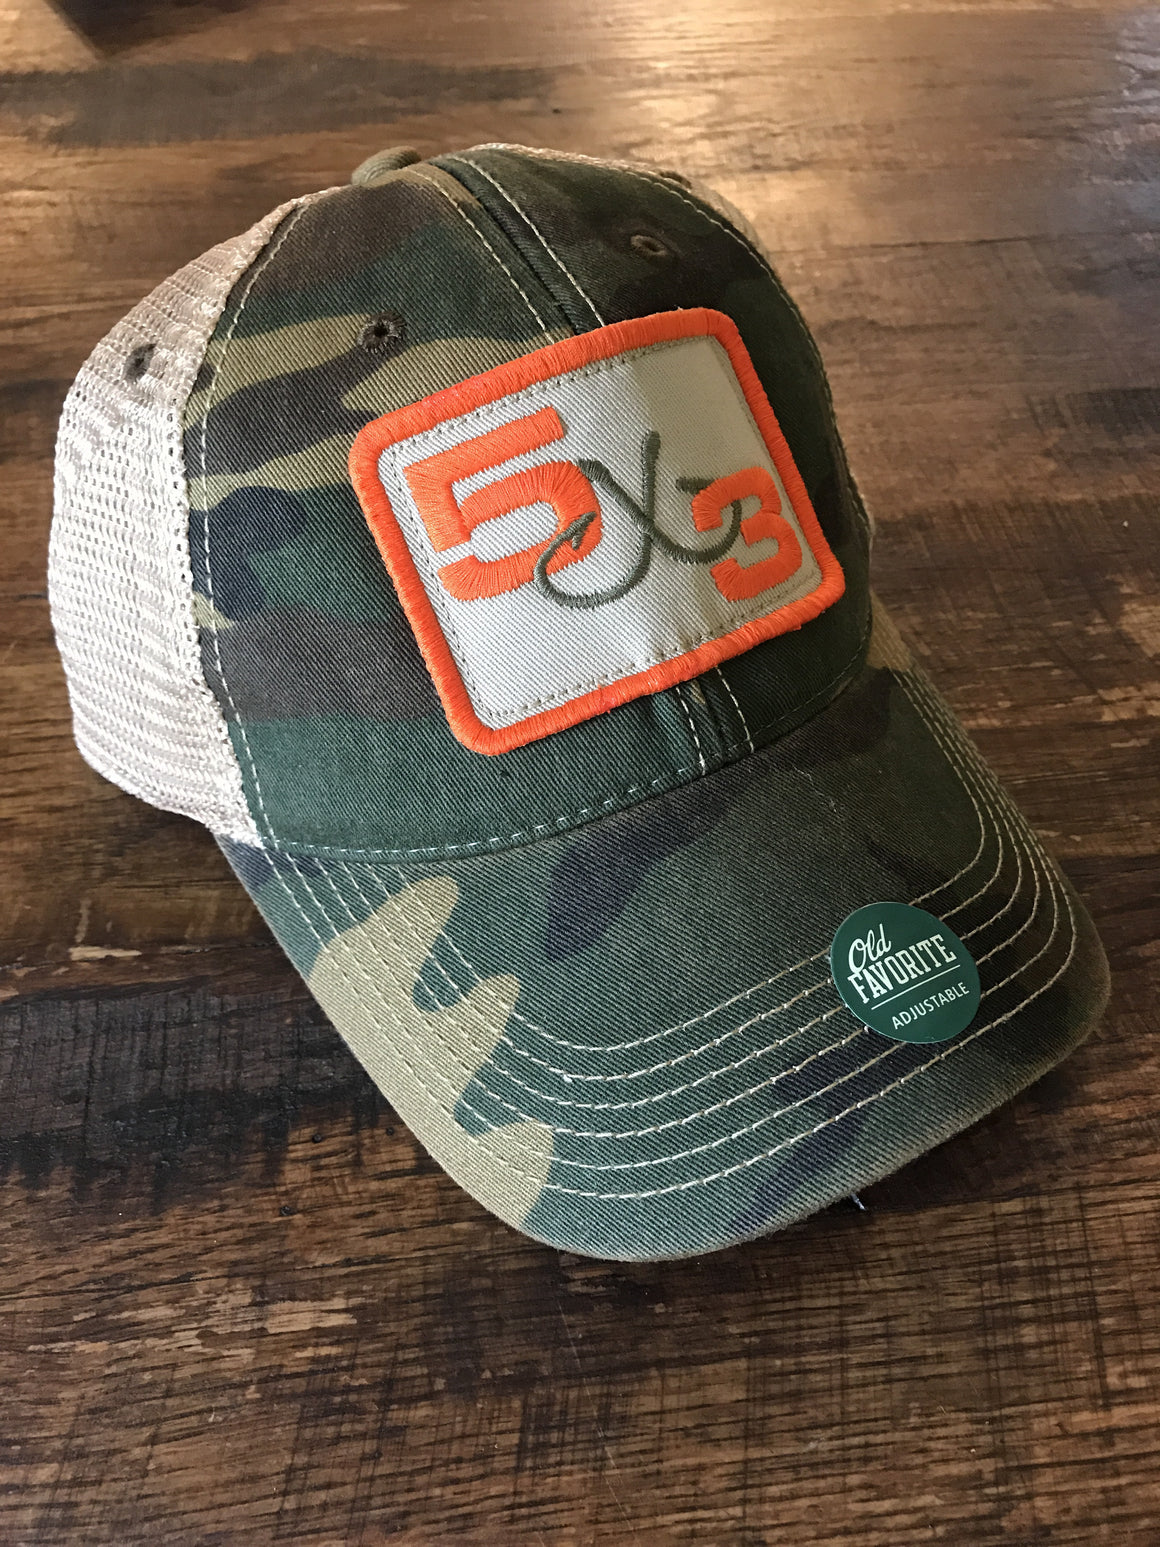 New 5x3 camo and orange legacy hat.